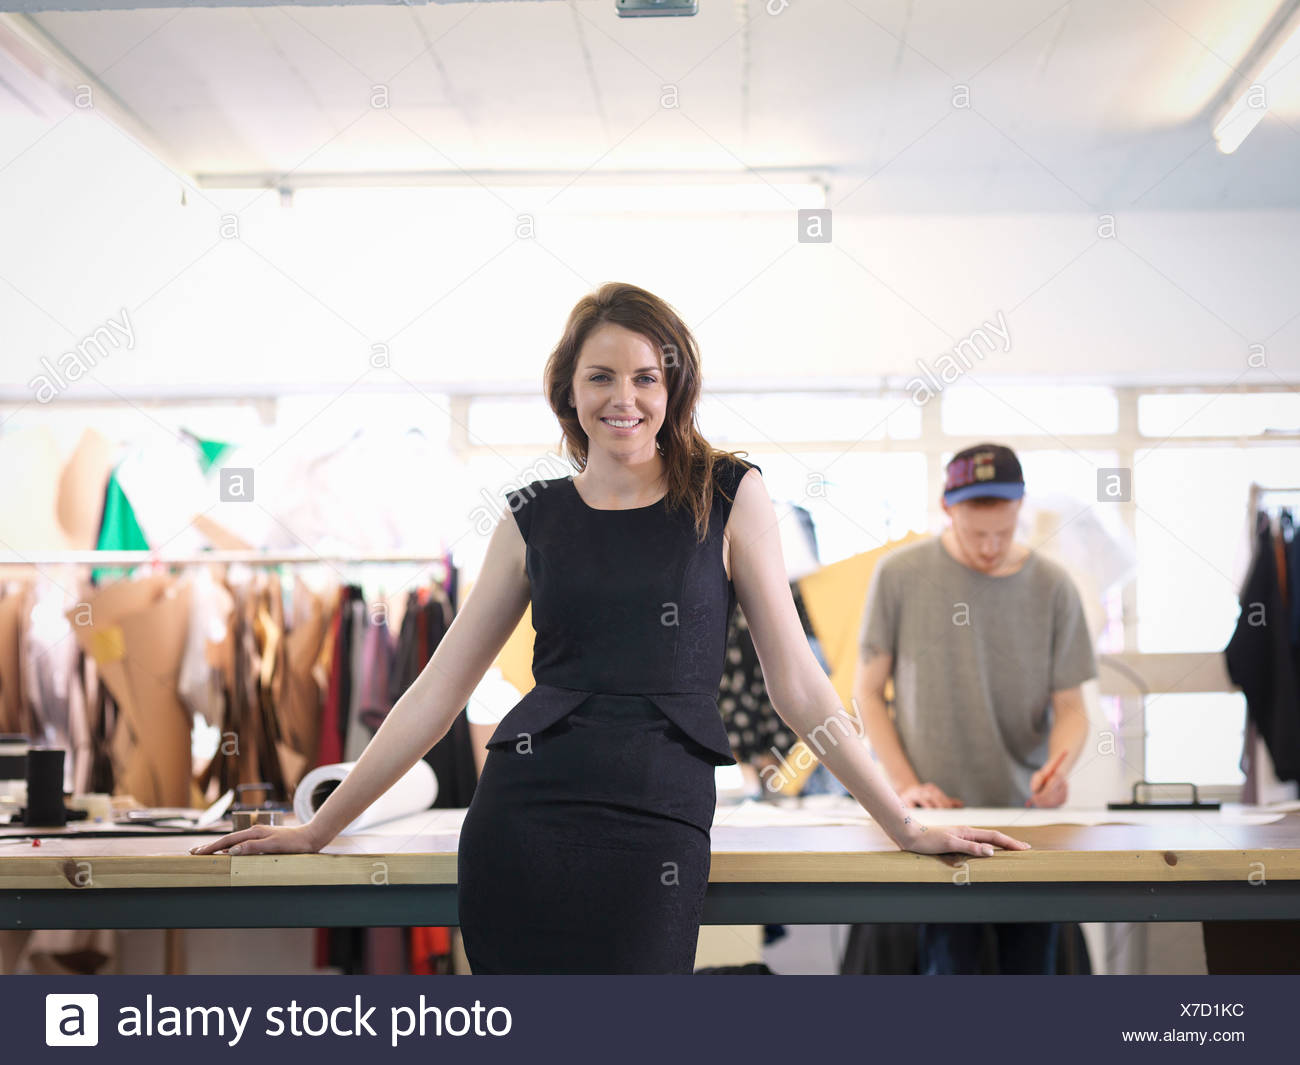 Fashion designer in fashion studio, portrait - Stock Image